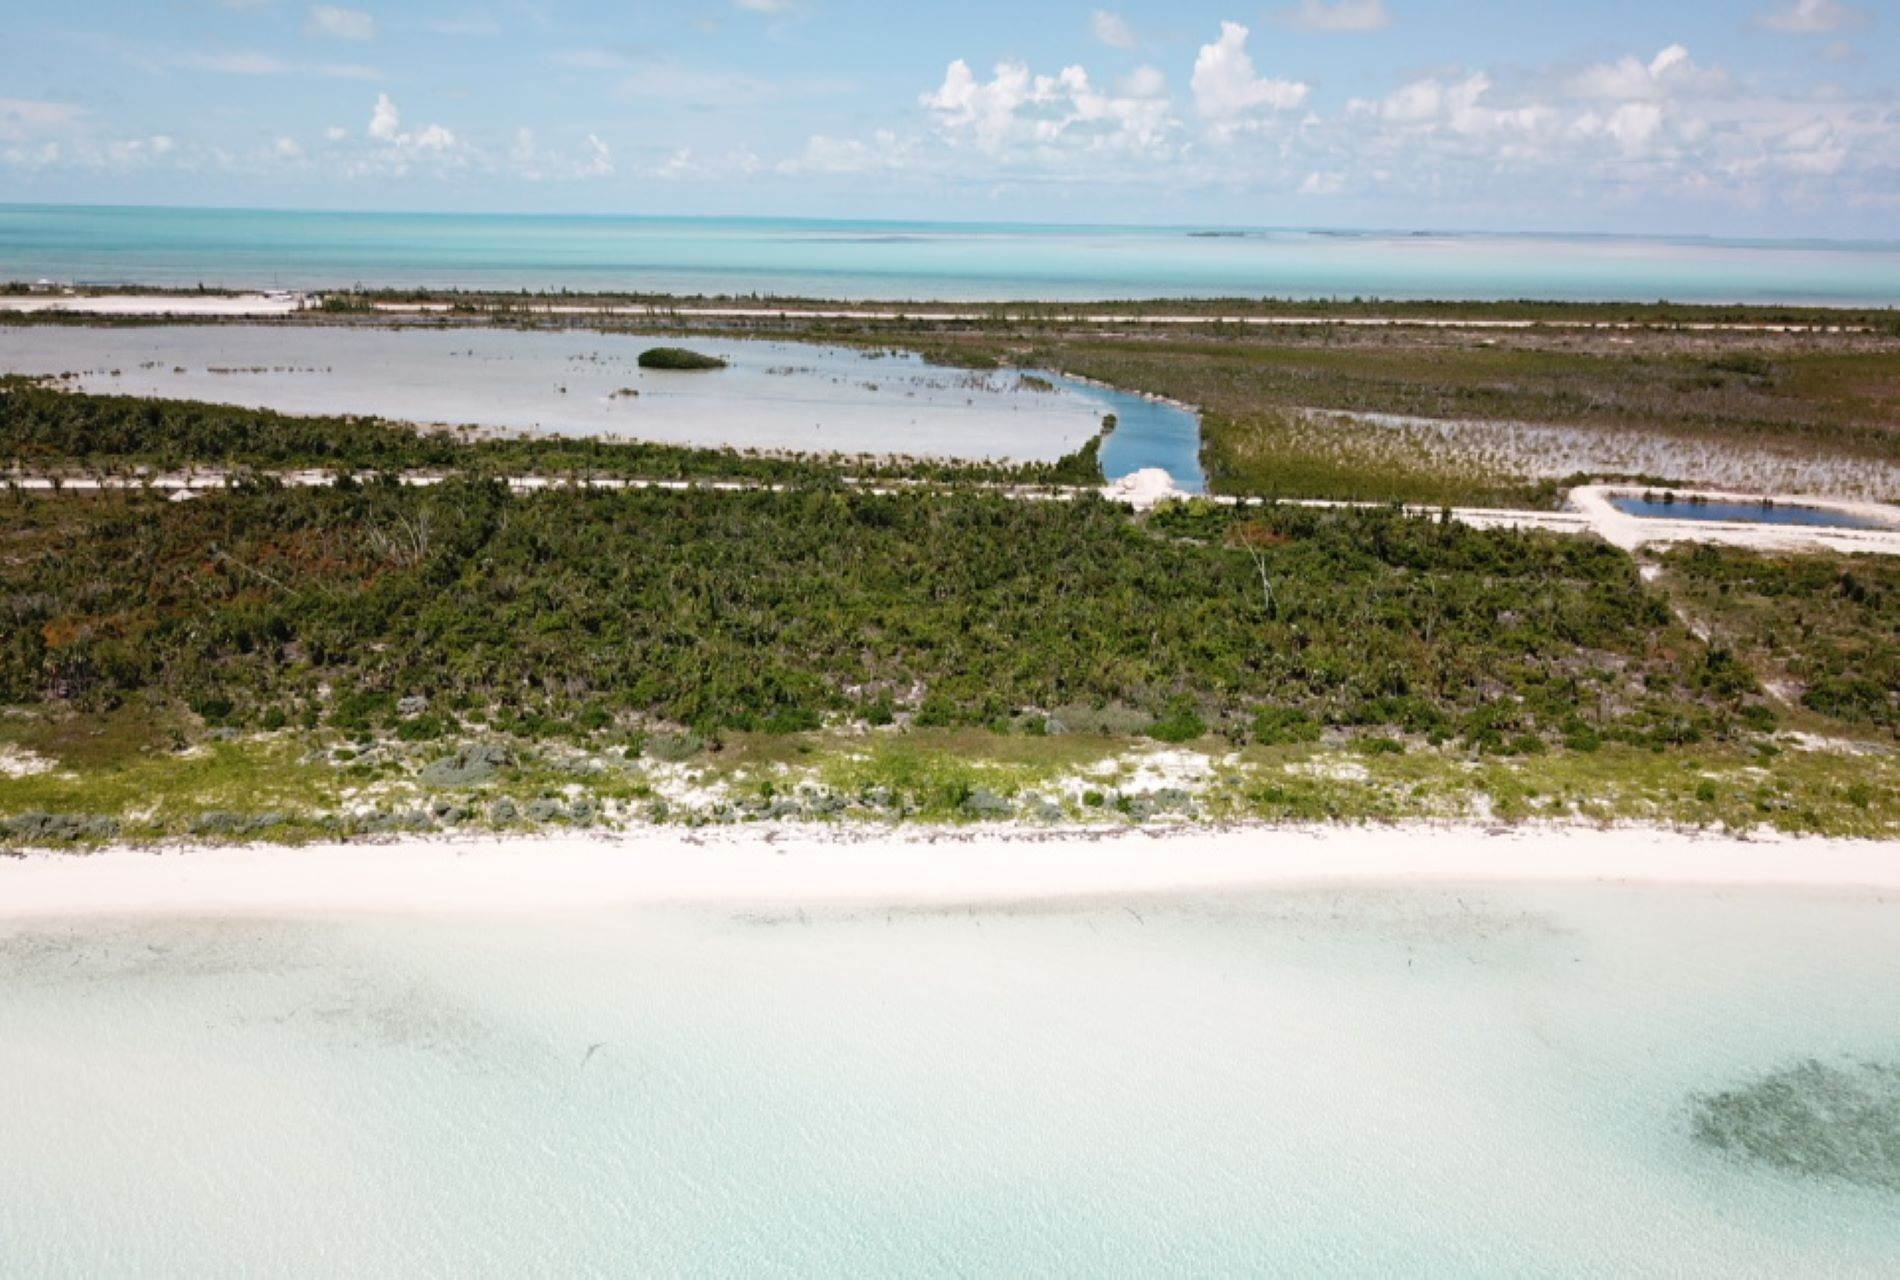 9. Land for Sale at Lot 29 Chub Cay - MLS 38796 Chub Cay, Berry Islands, Bahamas